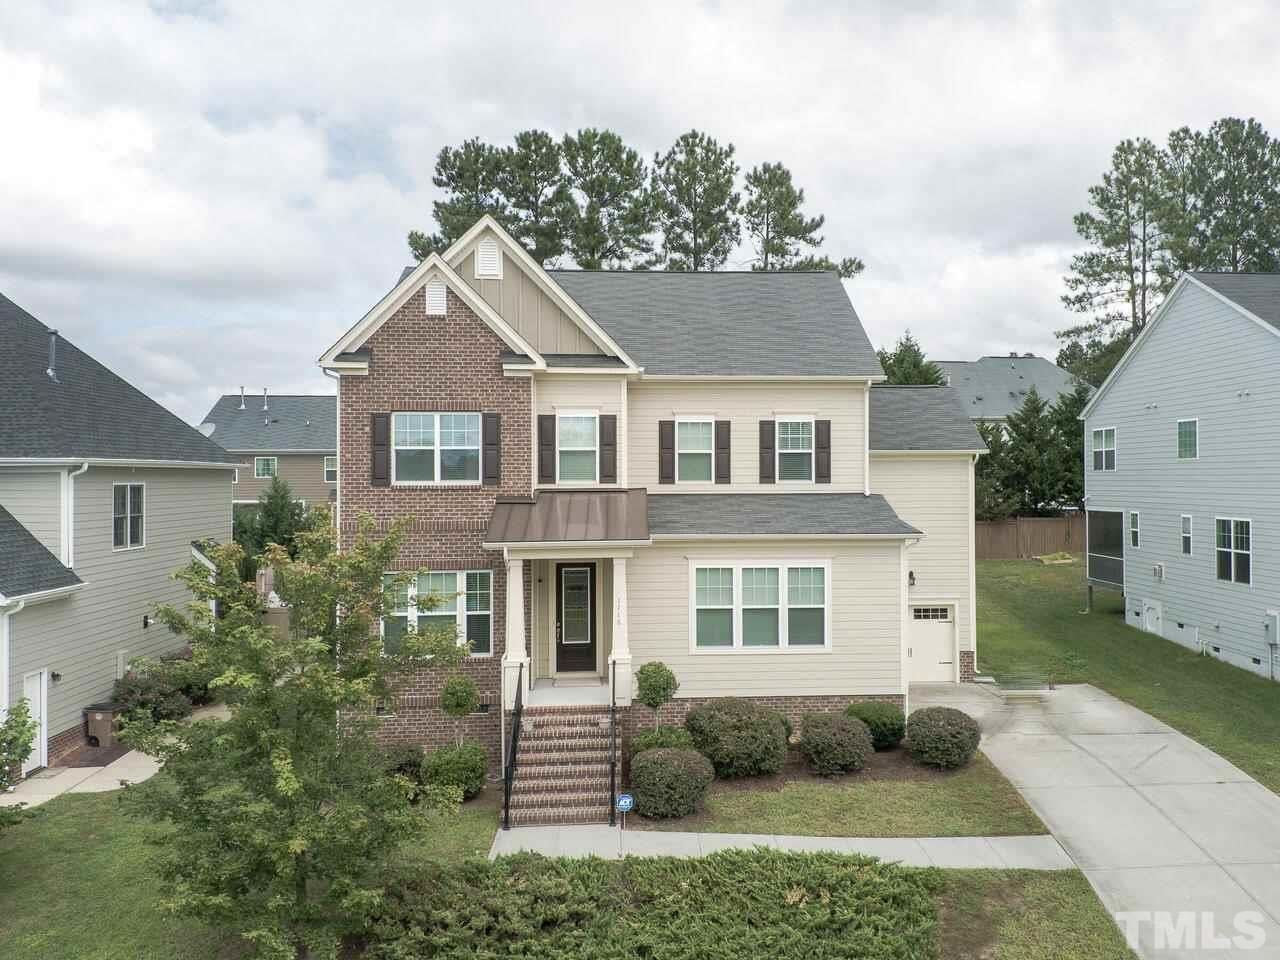 1116 Litchborough Way, Wake Forest, NC 27587 - MLS#: 2342255